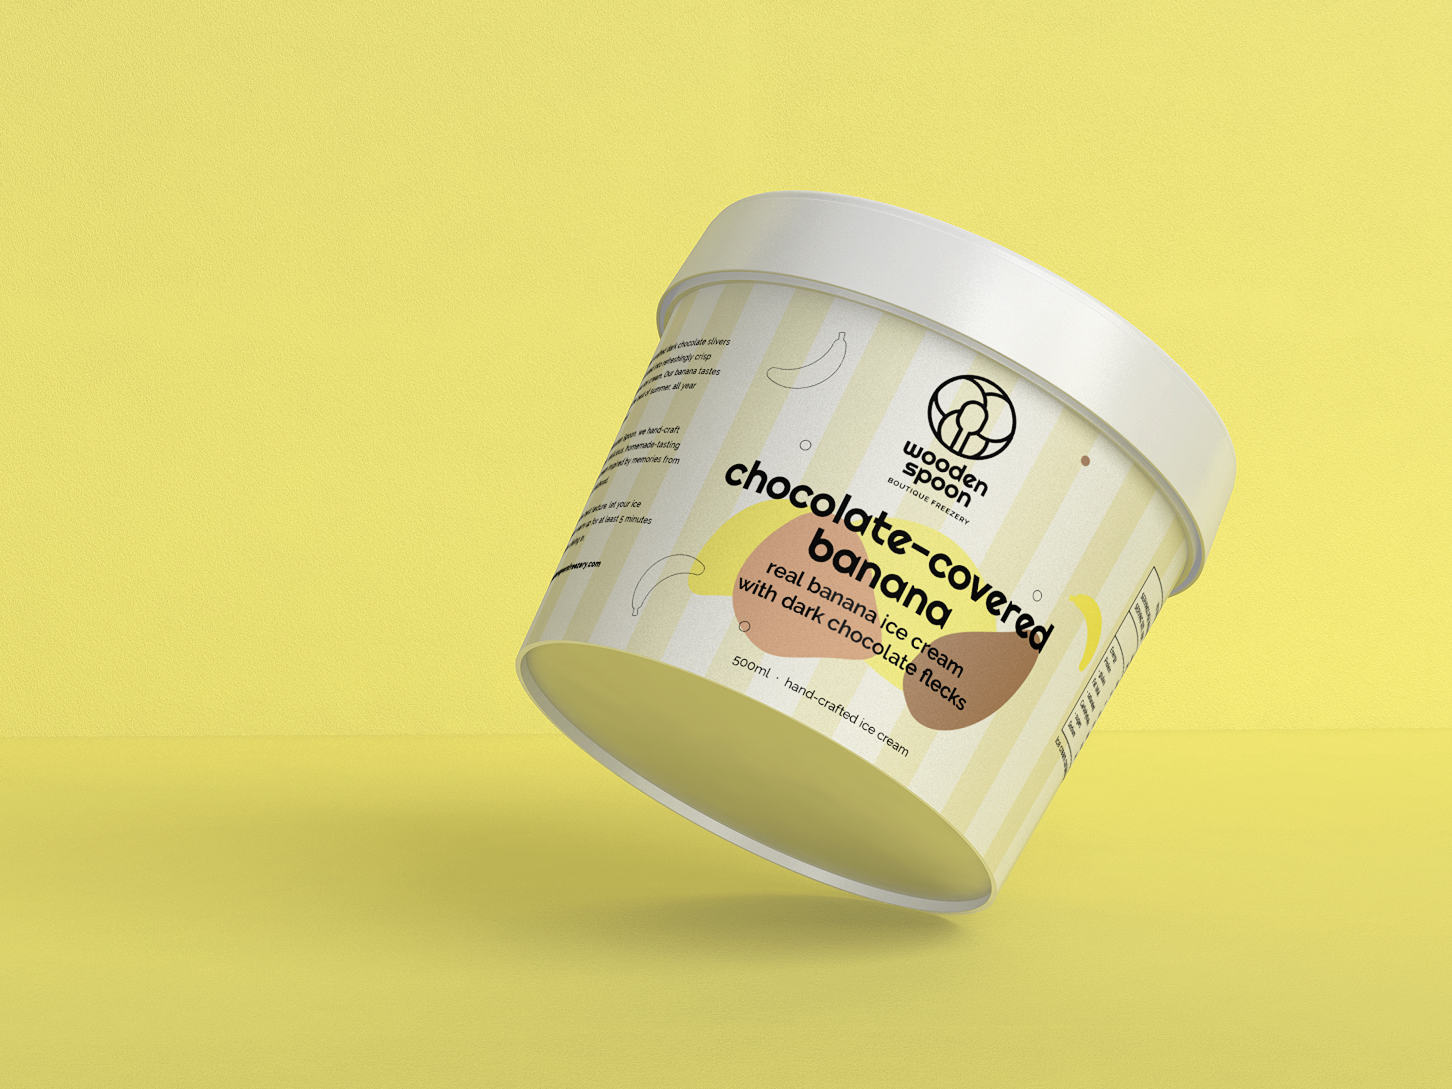 Ice Cream packaging packaging logo daily cinema4d 3d art 3d branding design simple ice cream